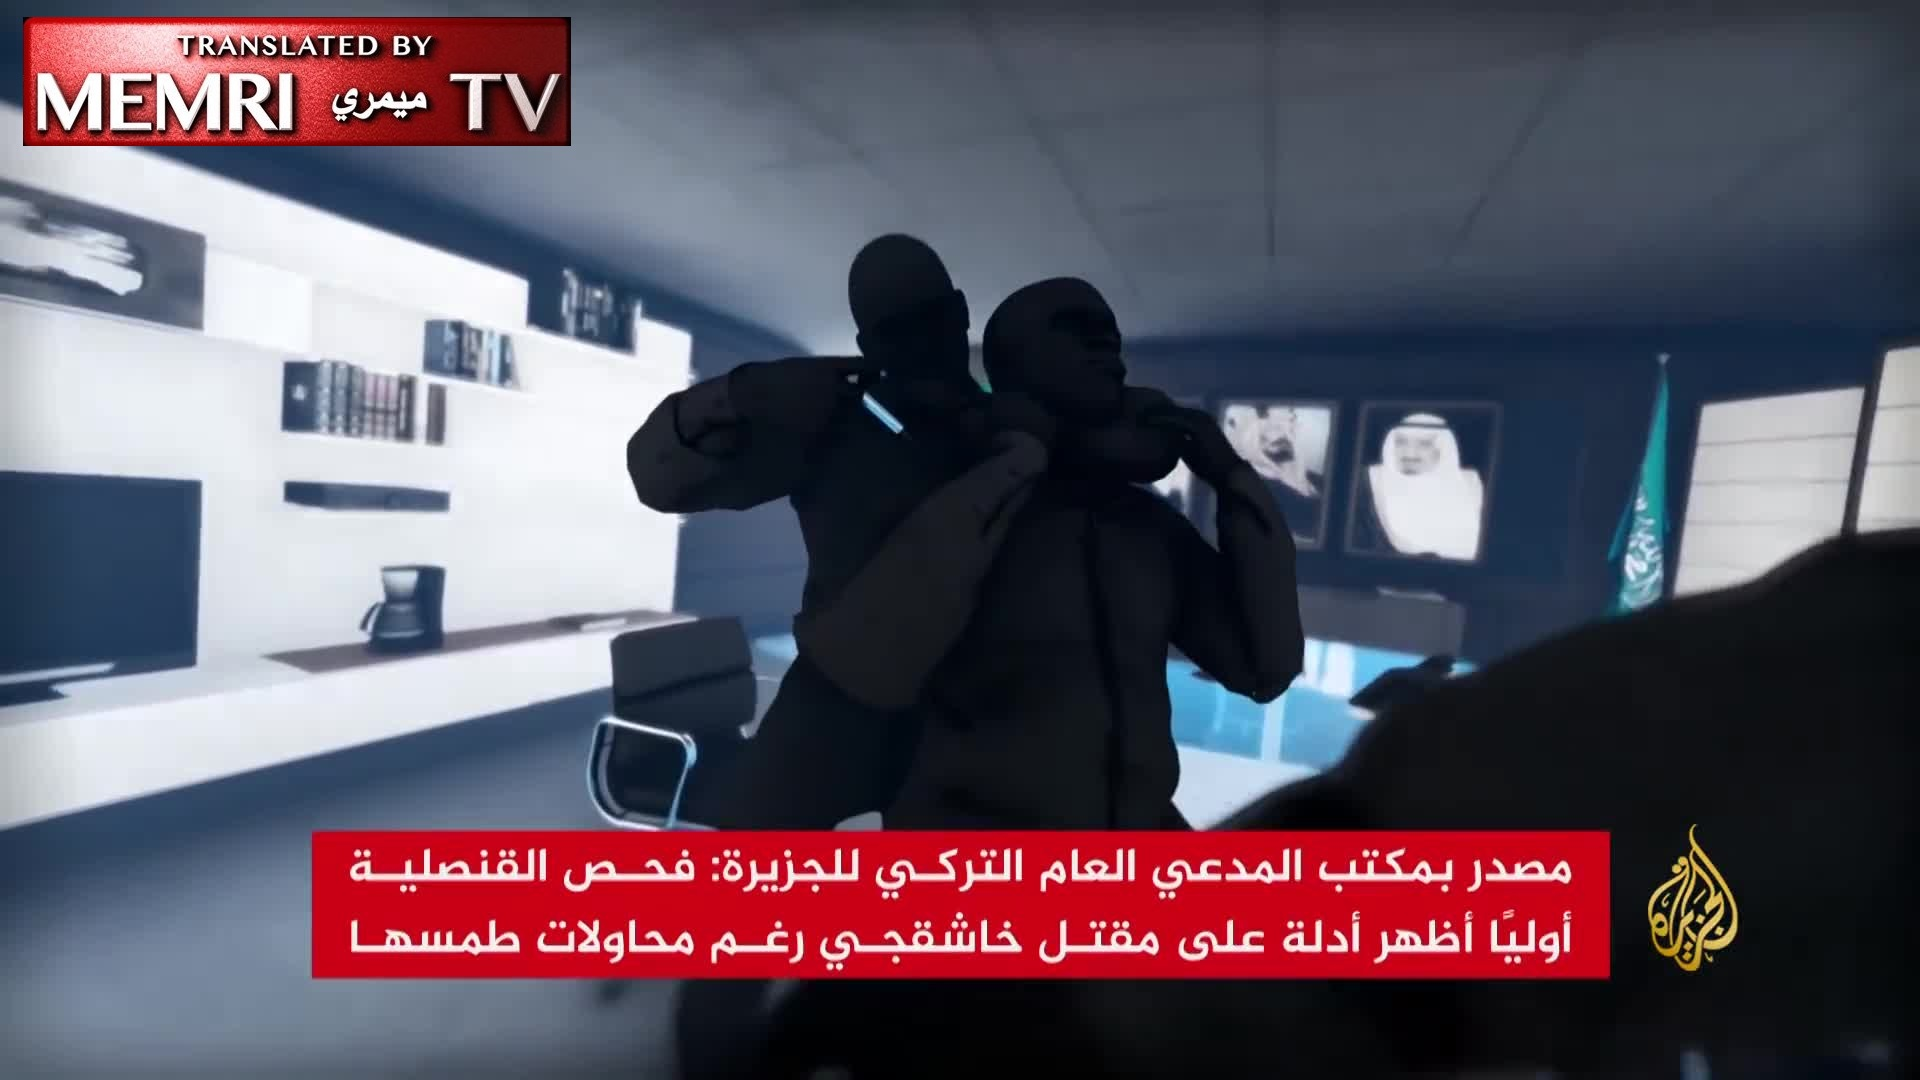 Al-Jazeera TV Simulation of the Murder of Jamal Al-Khashoggi